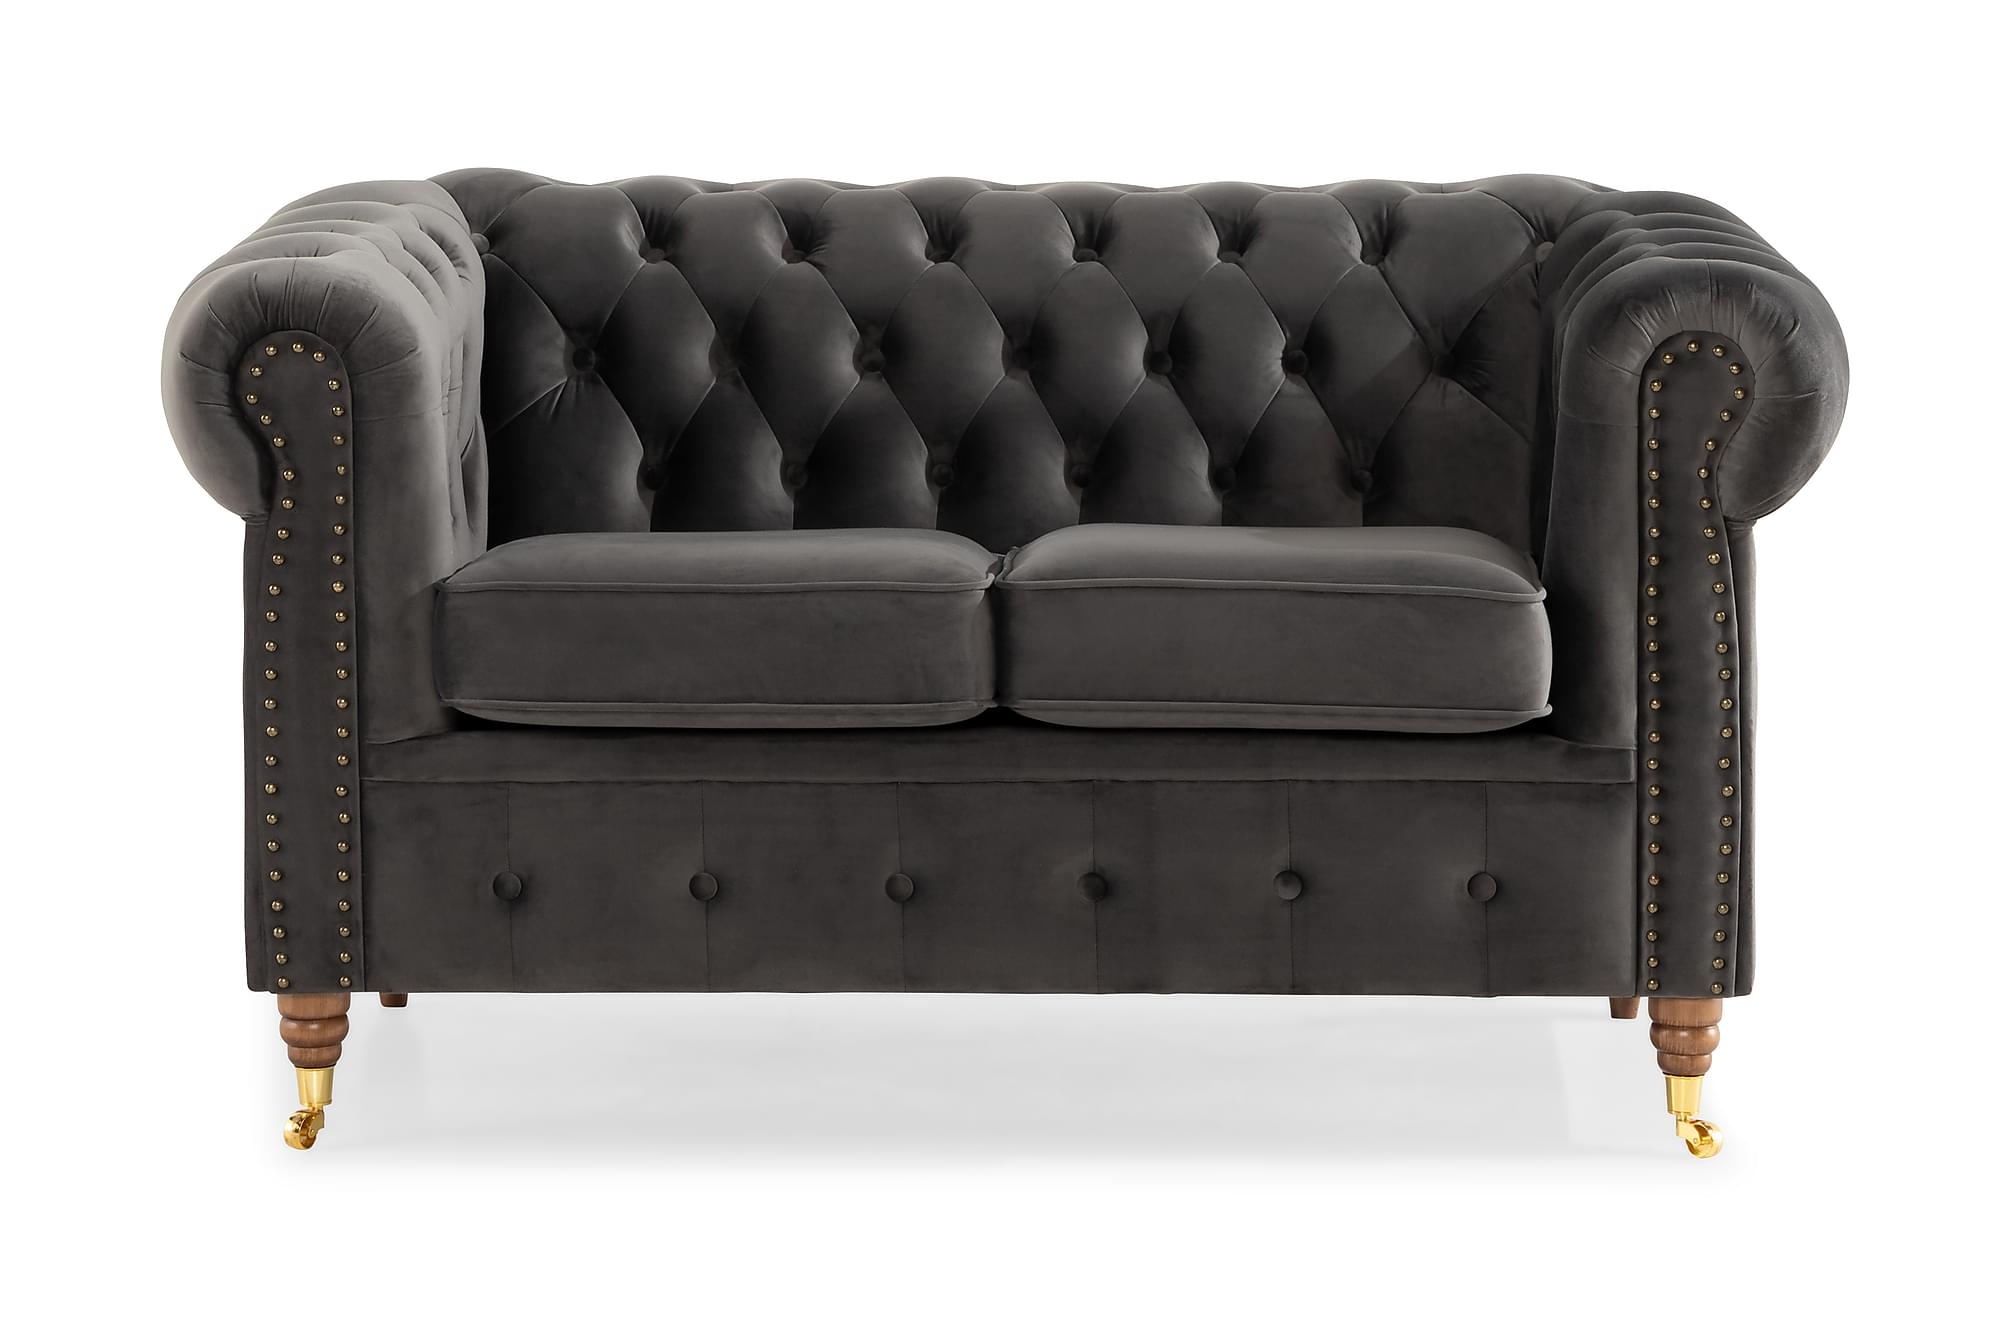 CHESTERFIELD LUX 2-sits Soffa Grå, Chesterfieldsoffor